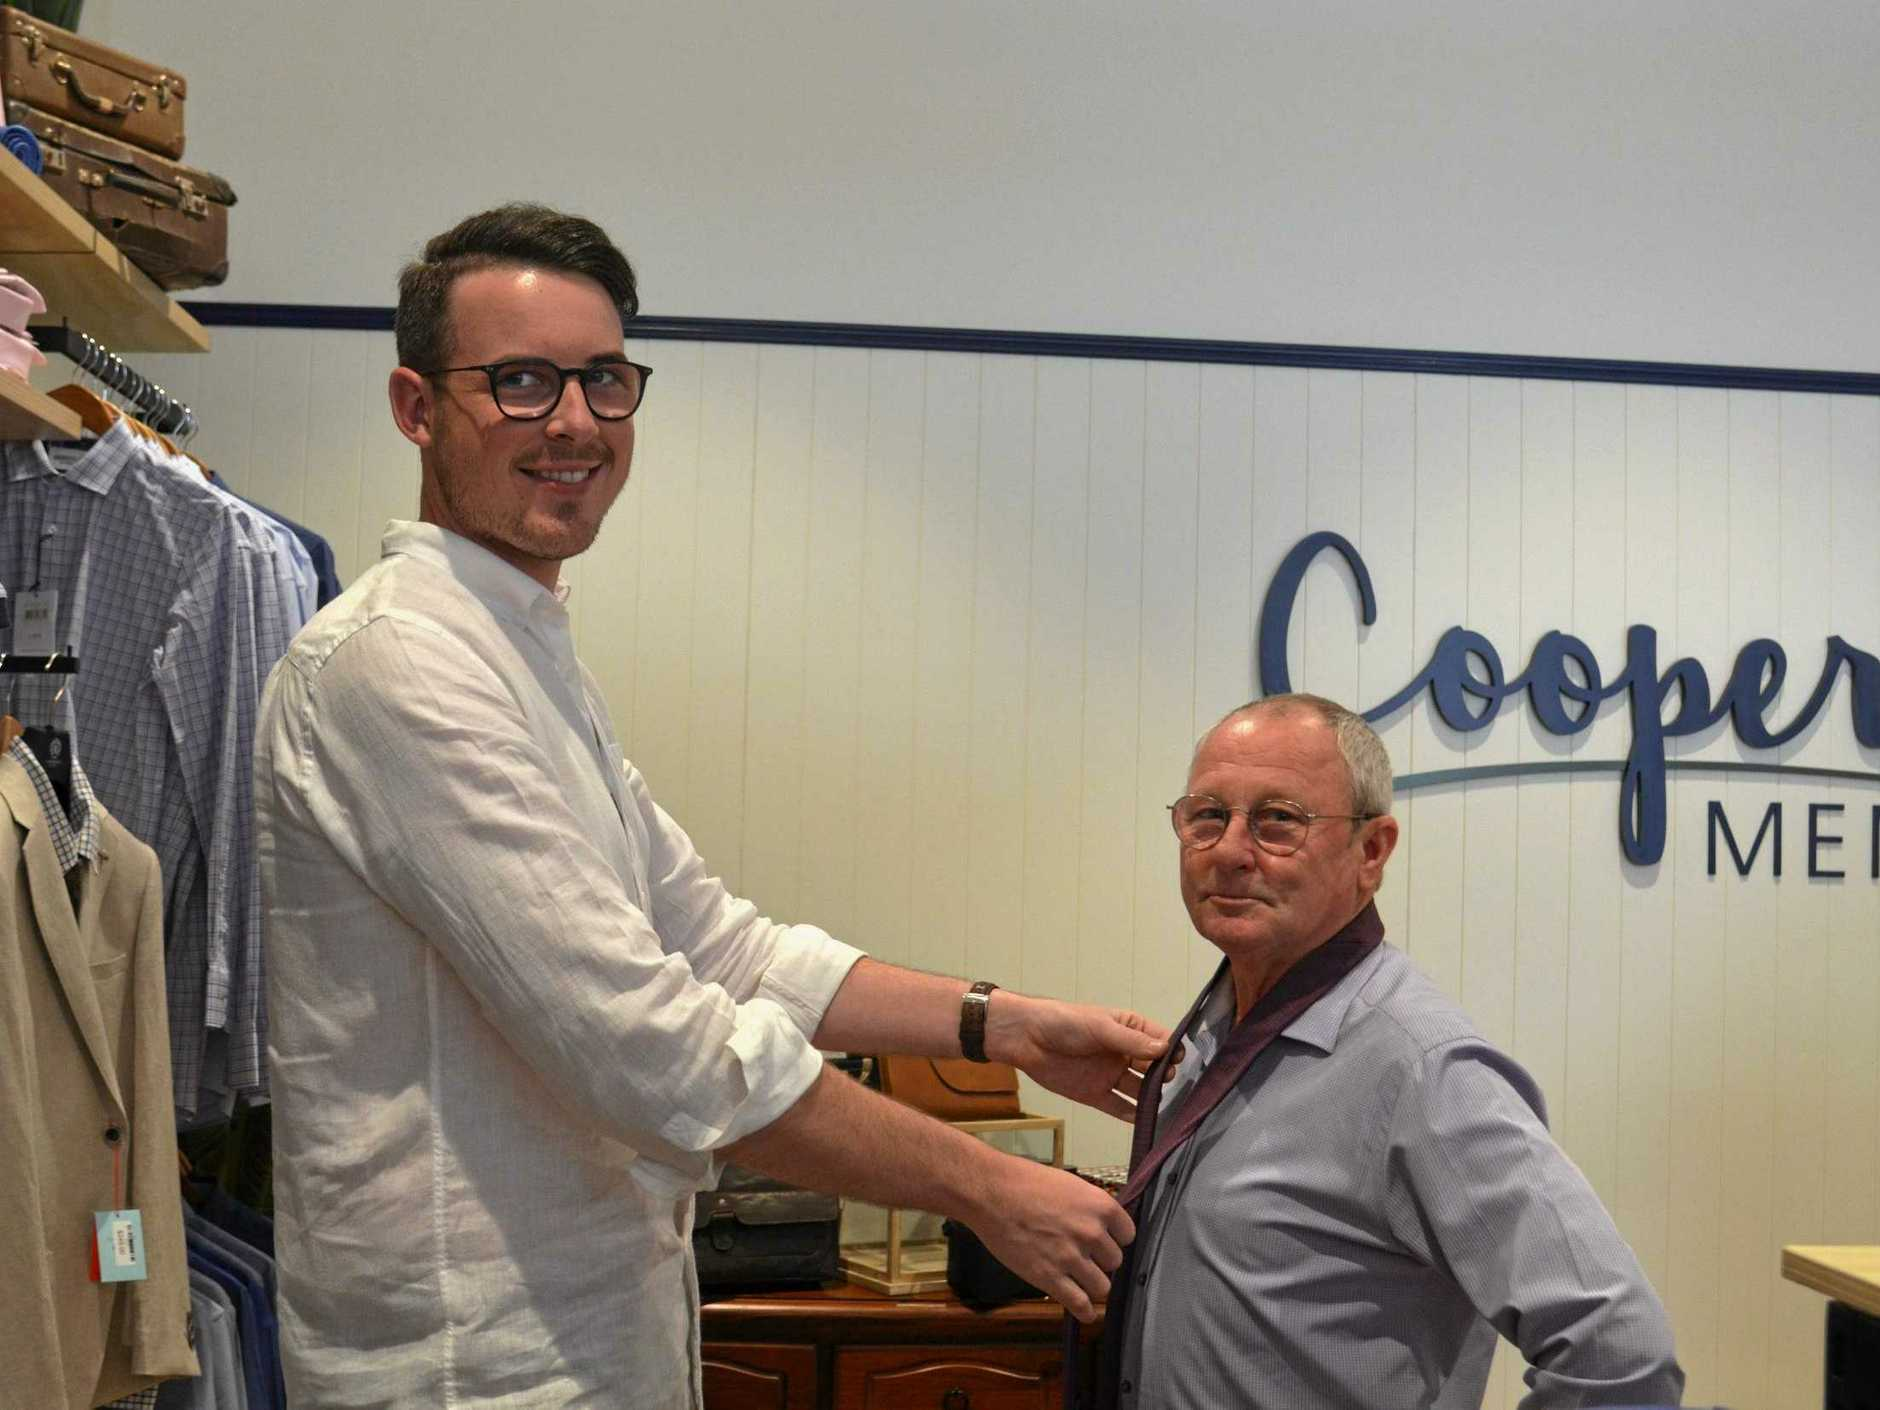 NEW SHIRT DOES WONDERS: Store owner Andrew Cooper shows Graham Lowrie what dressing up can do for self-esteem.